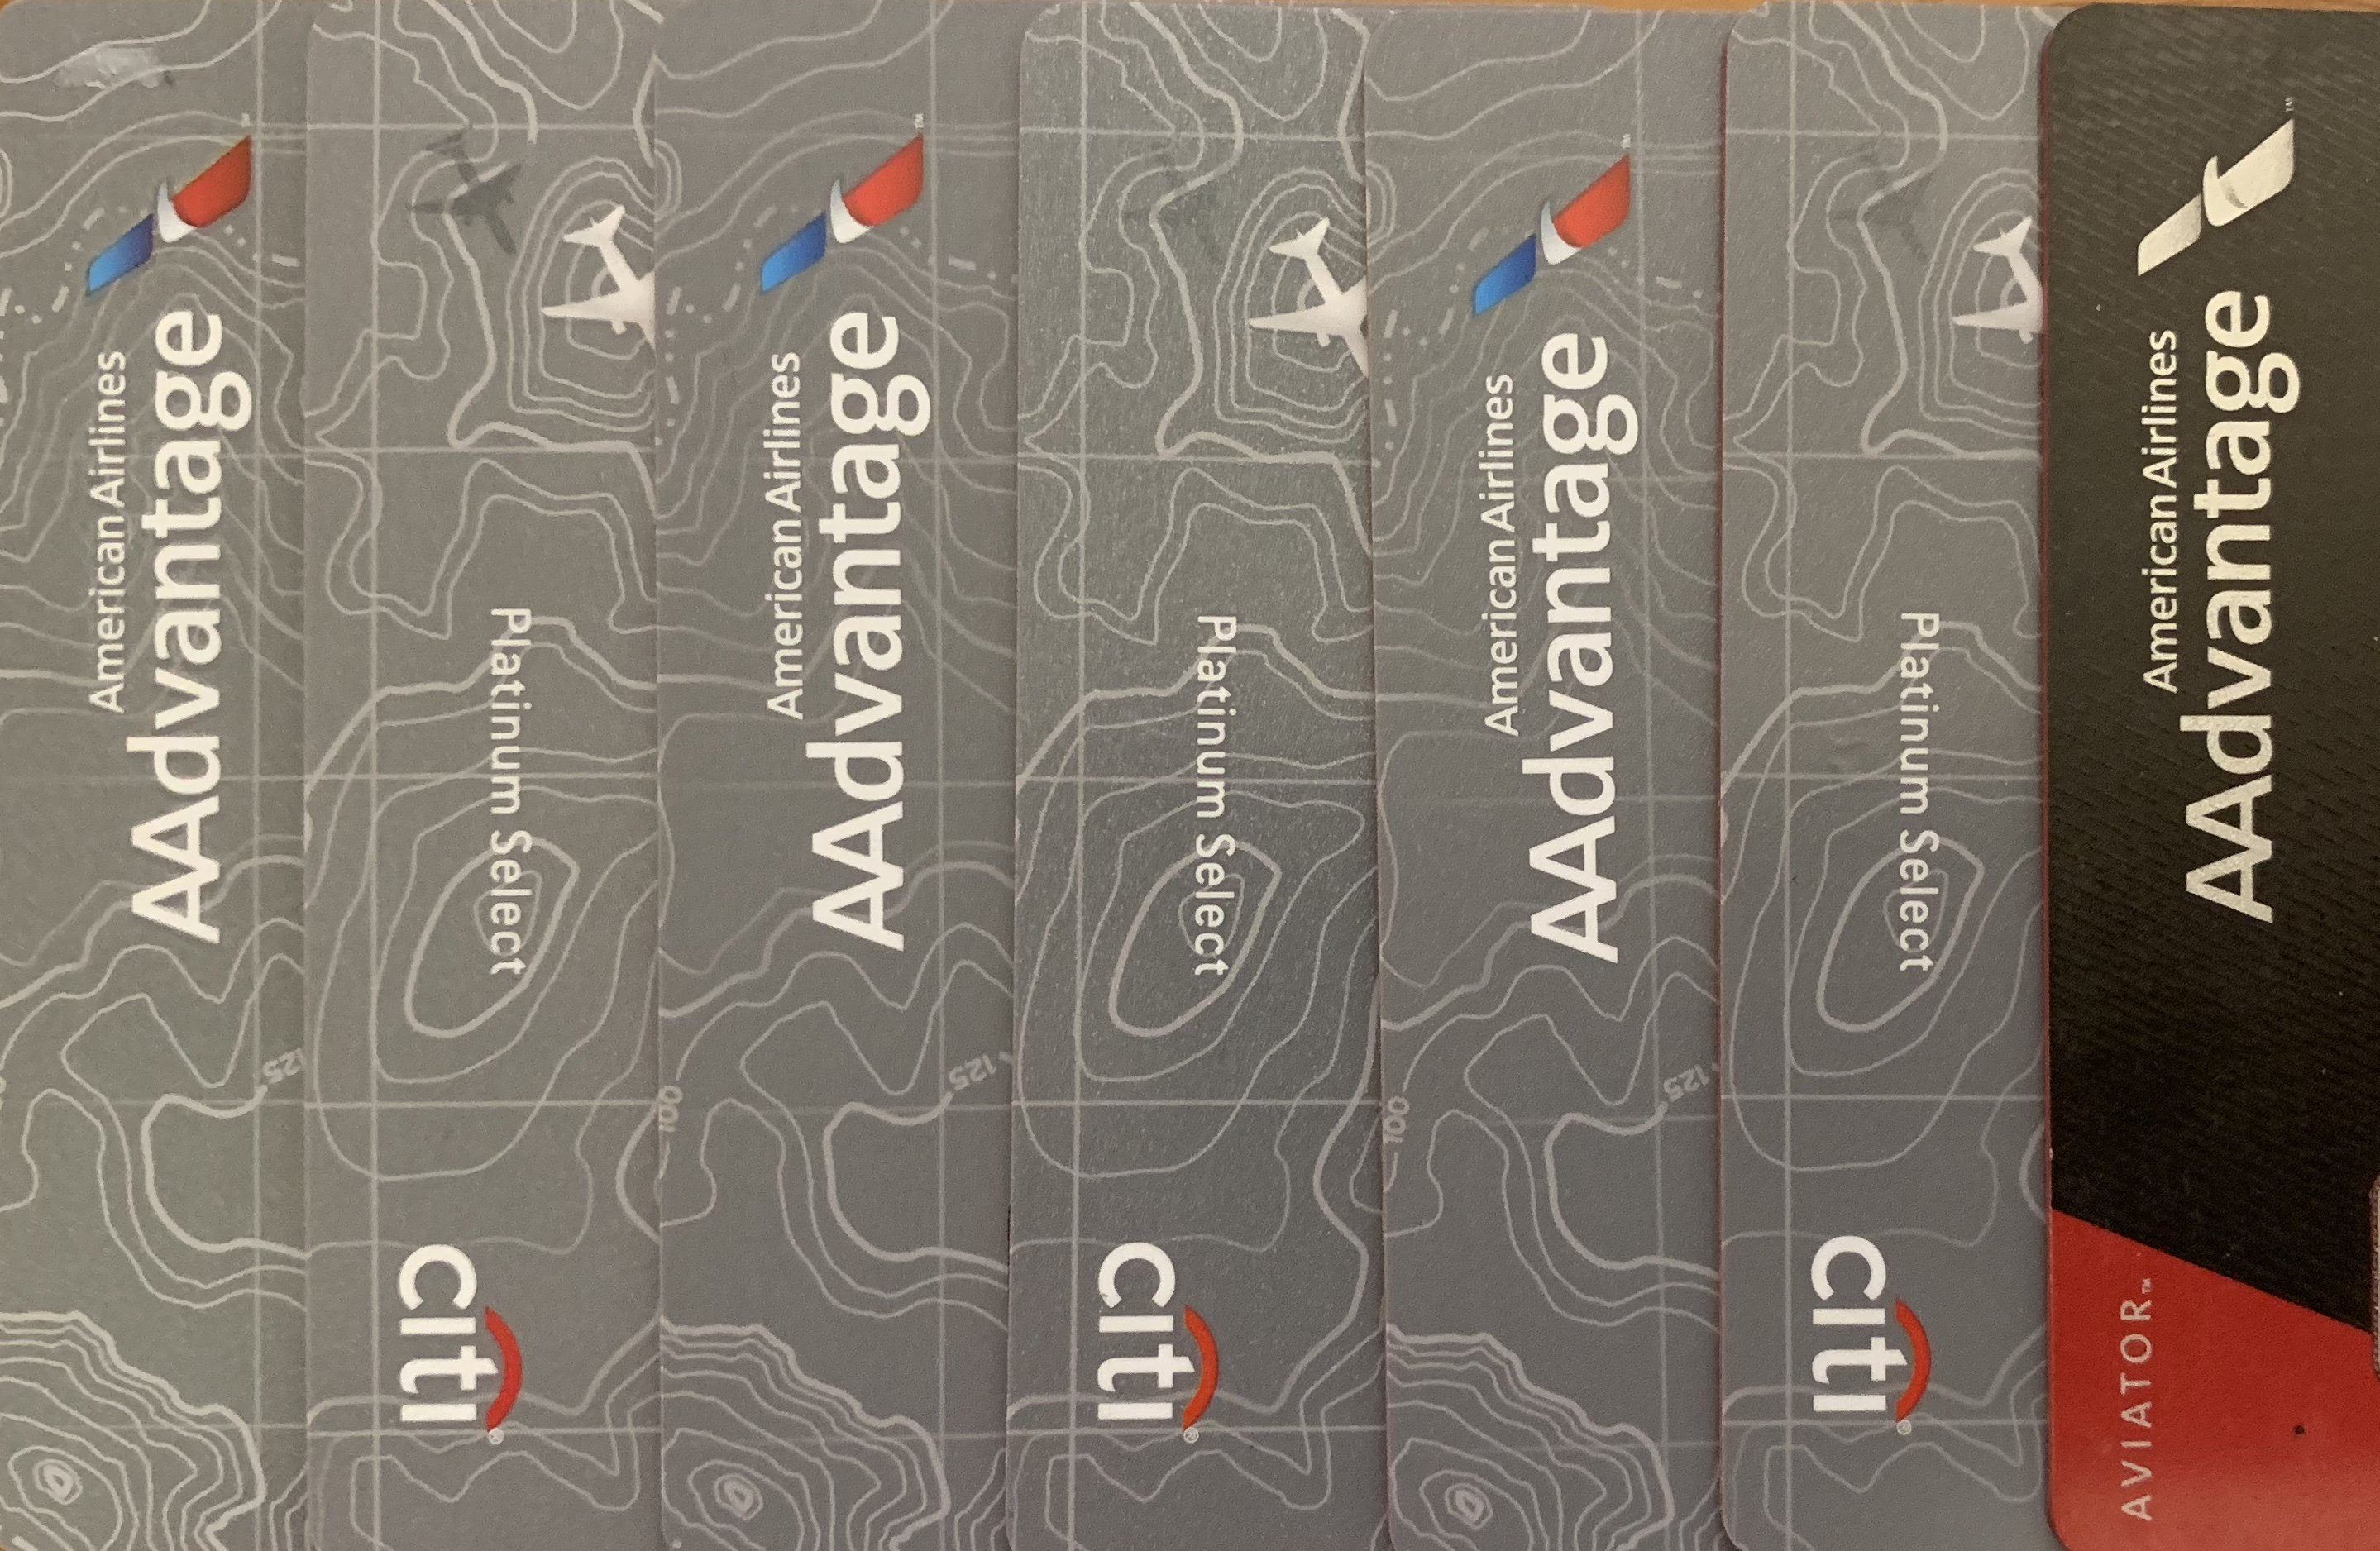 American Airlines Boarding Groups Amp Process Complete